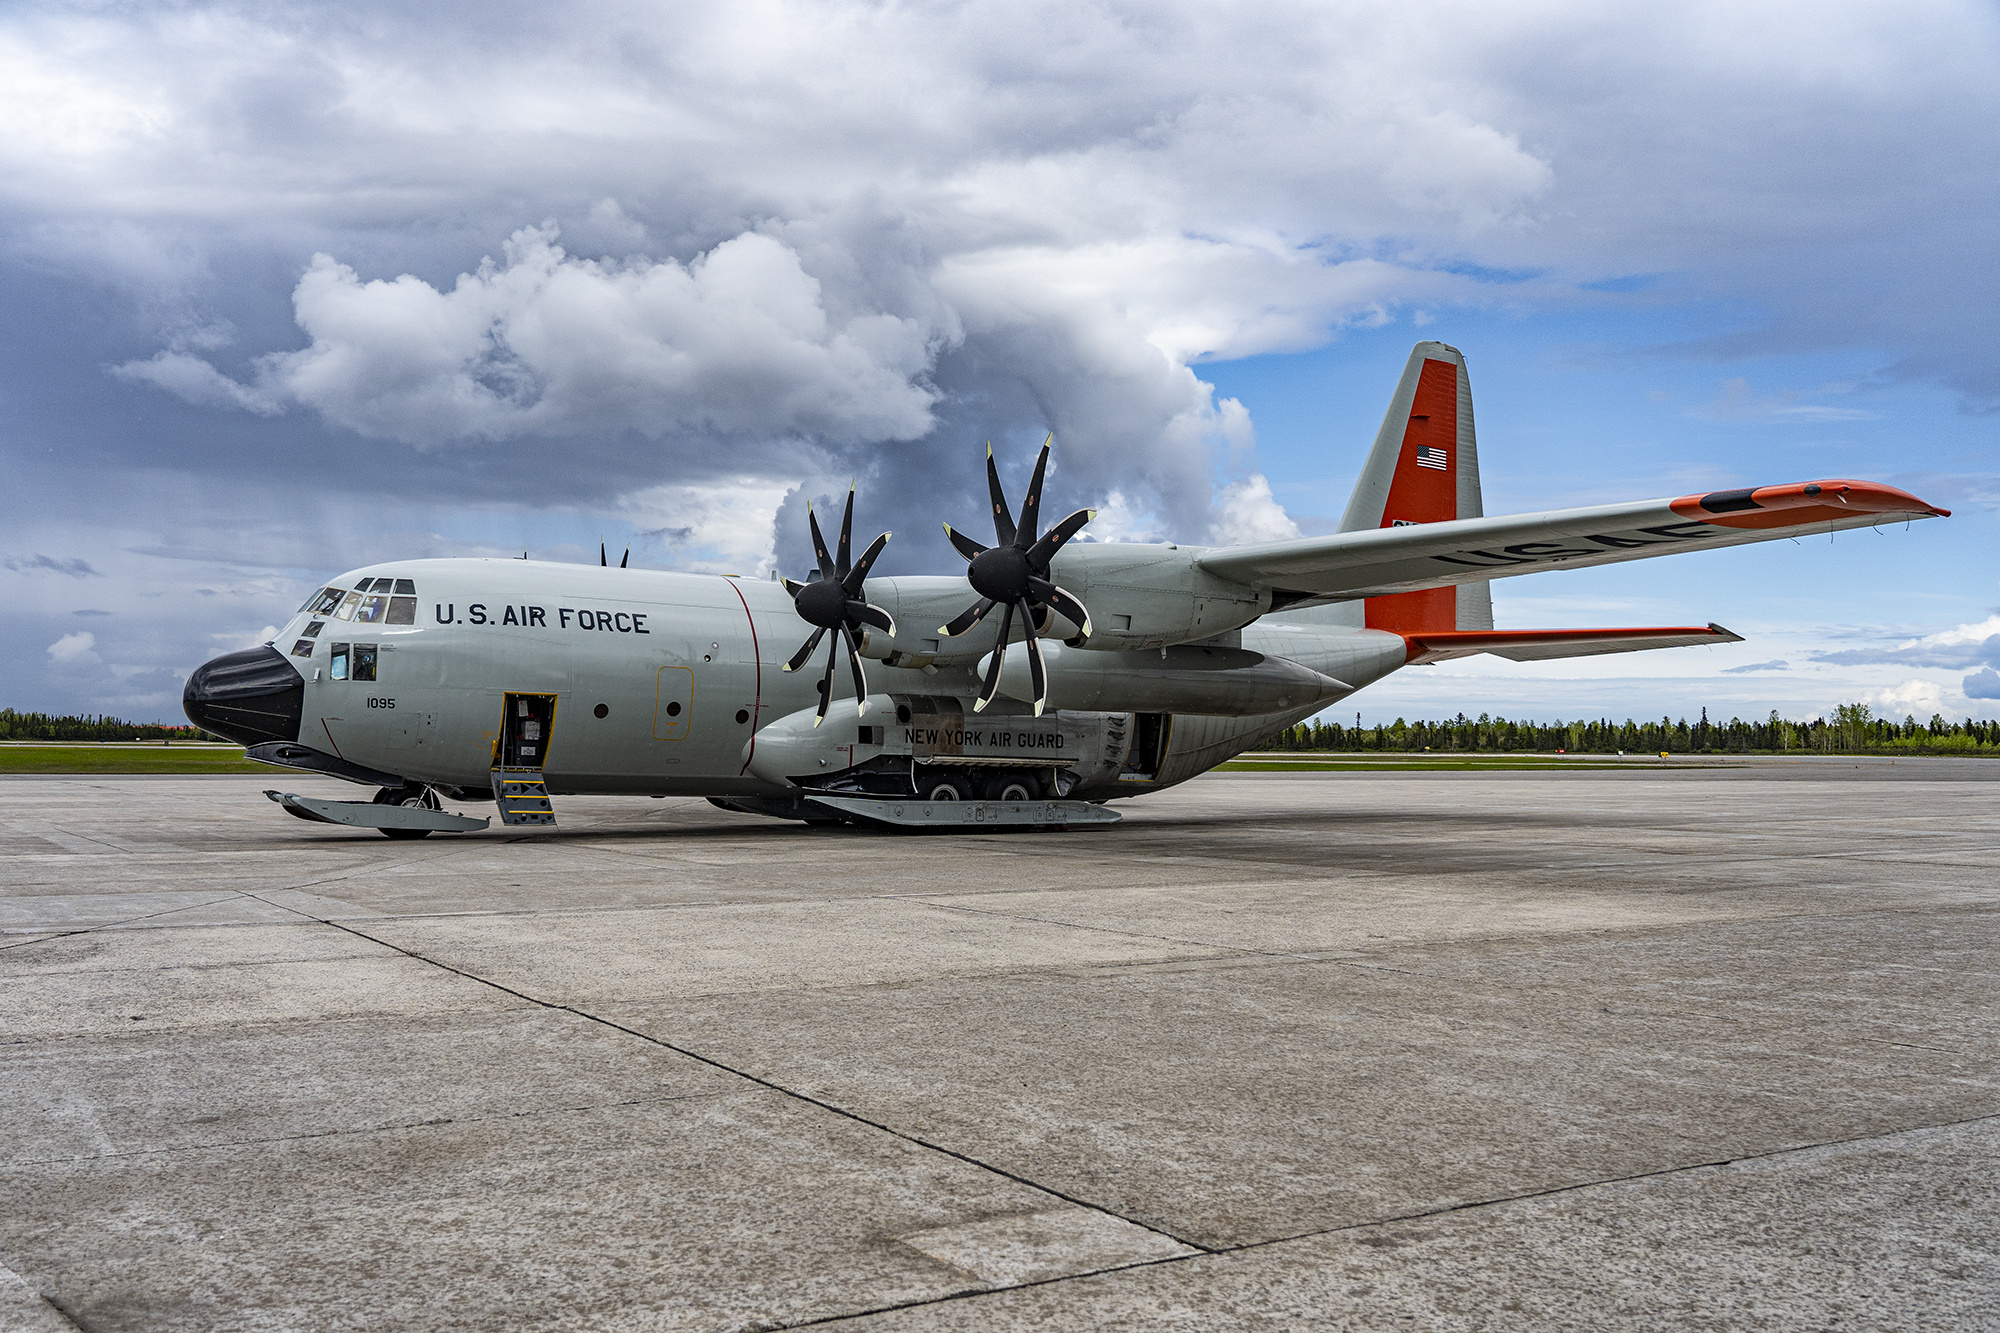 United States Air Force LC-130 Skibird at the Canadian Forces Base Goose Bay in Greenland.